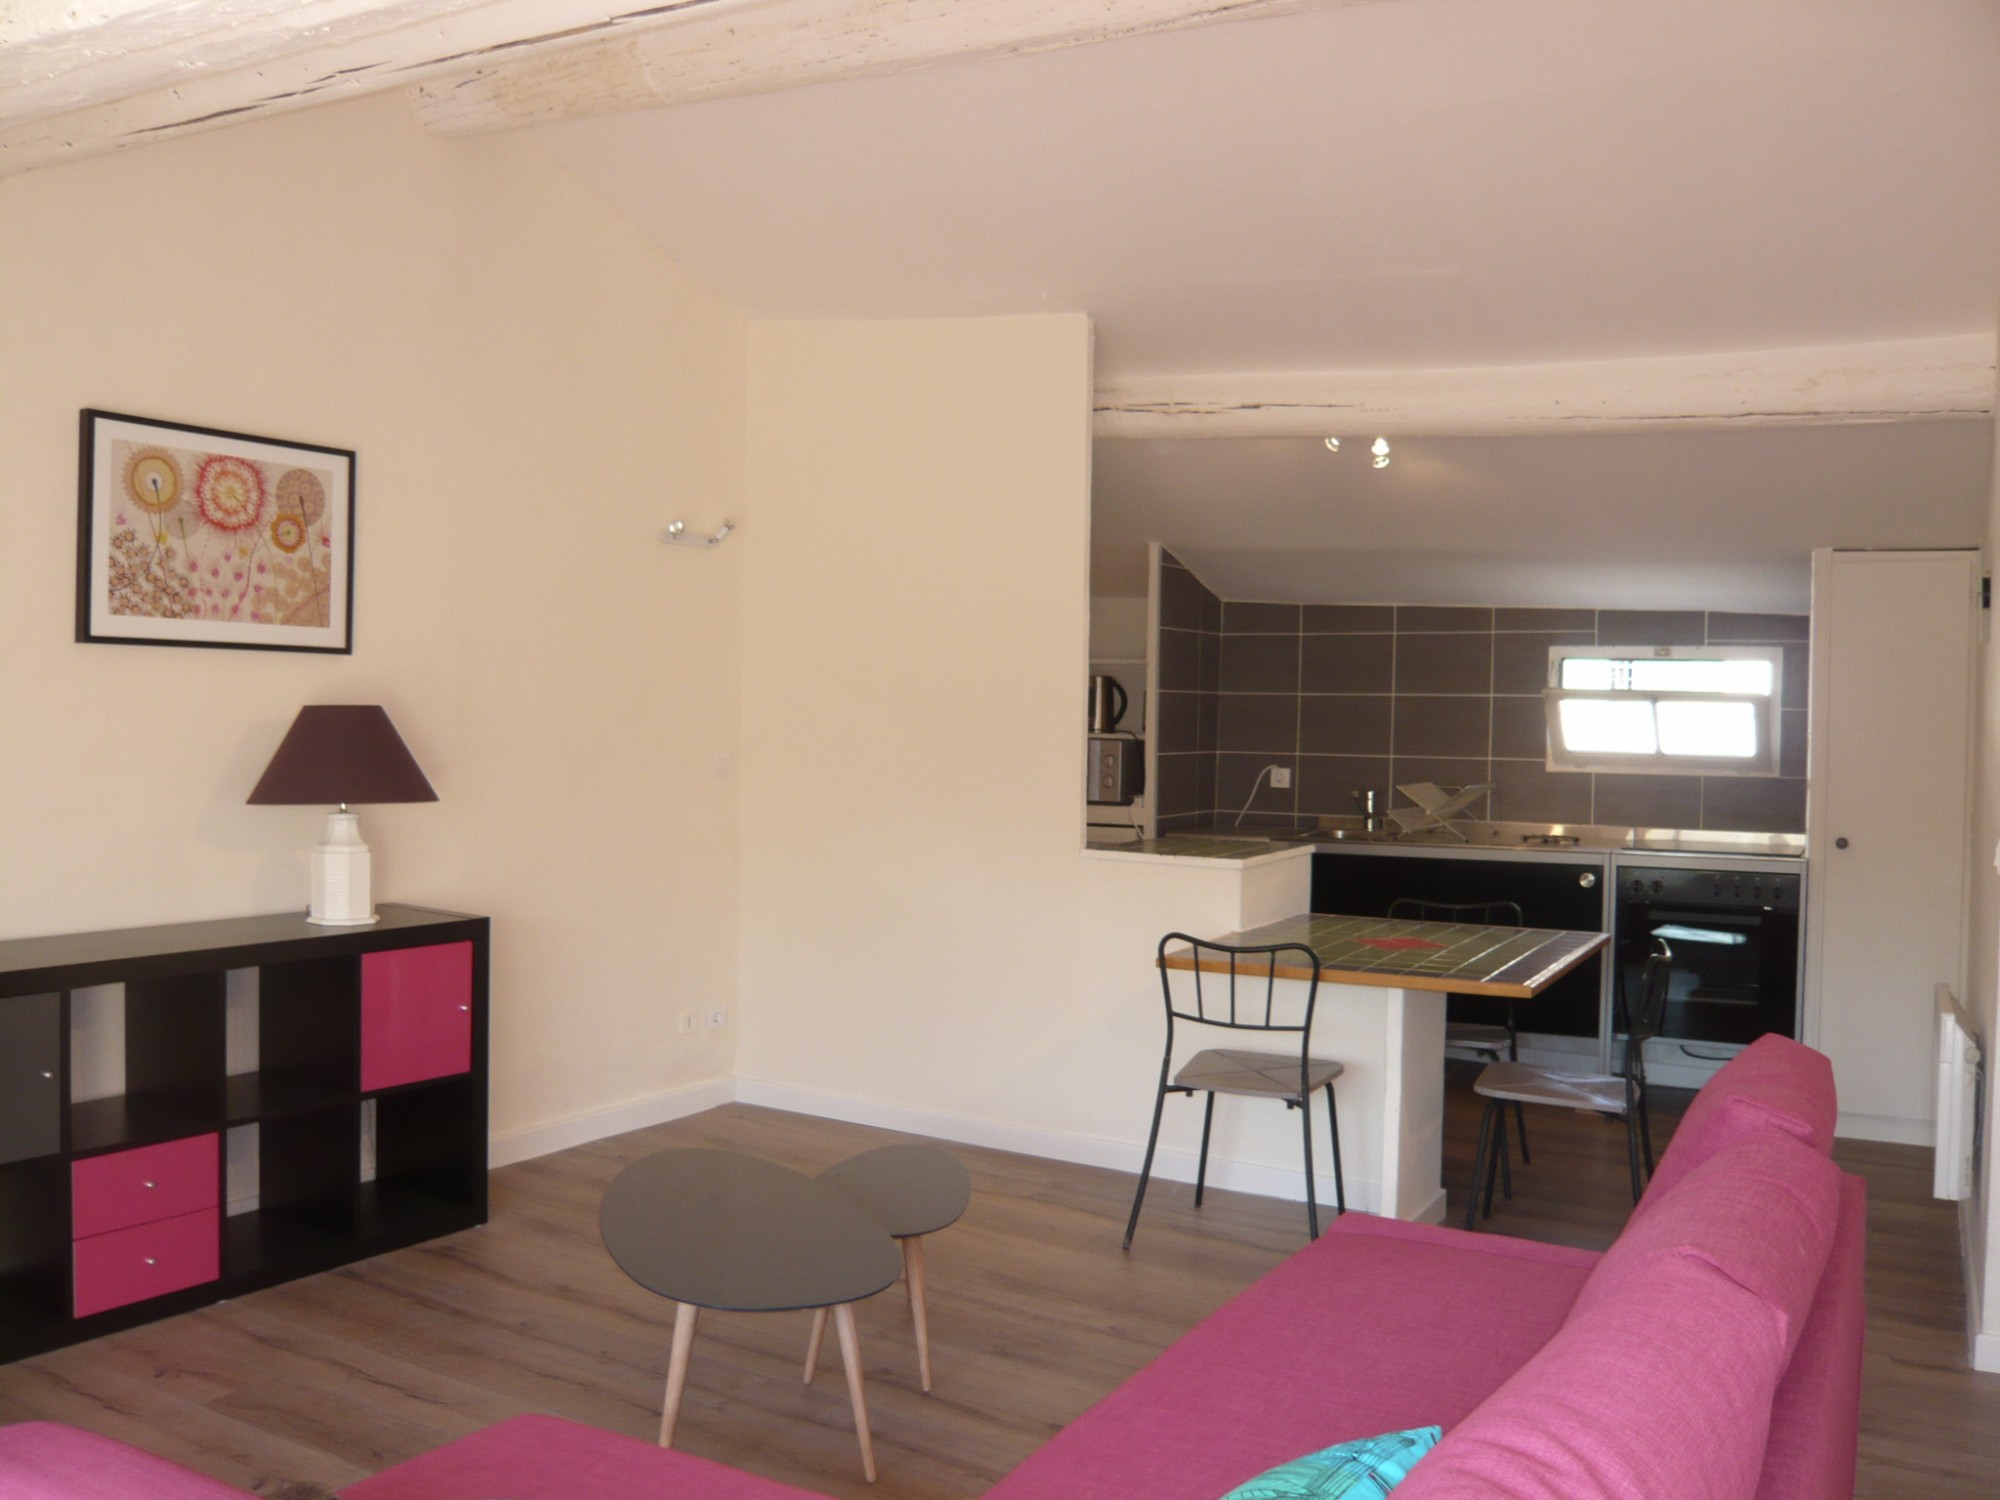 Ventes appartement t2 f2 marseille 07 quartier saint for Vente cuisine